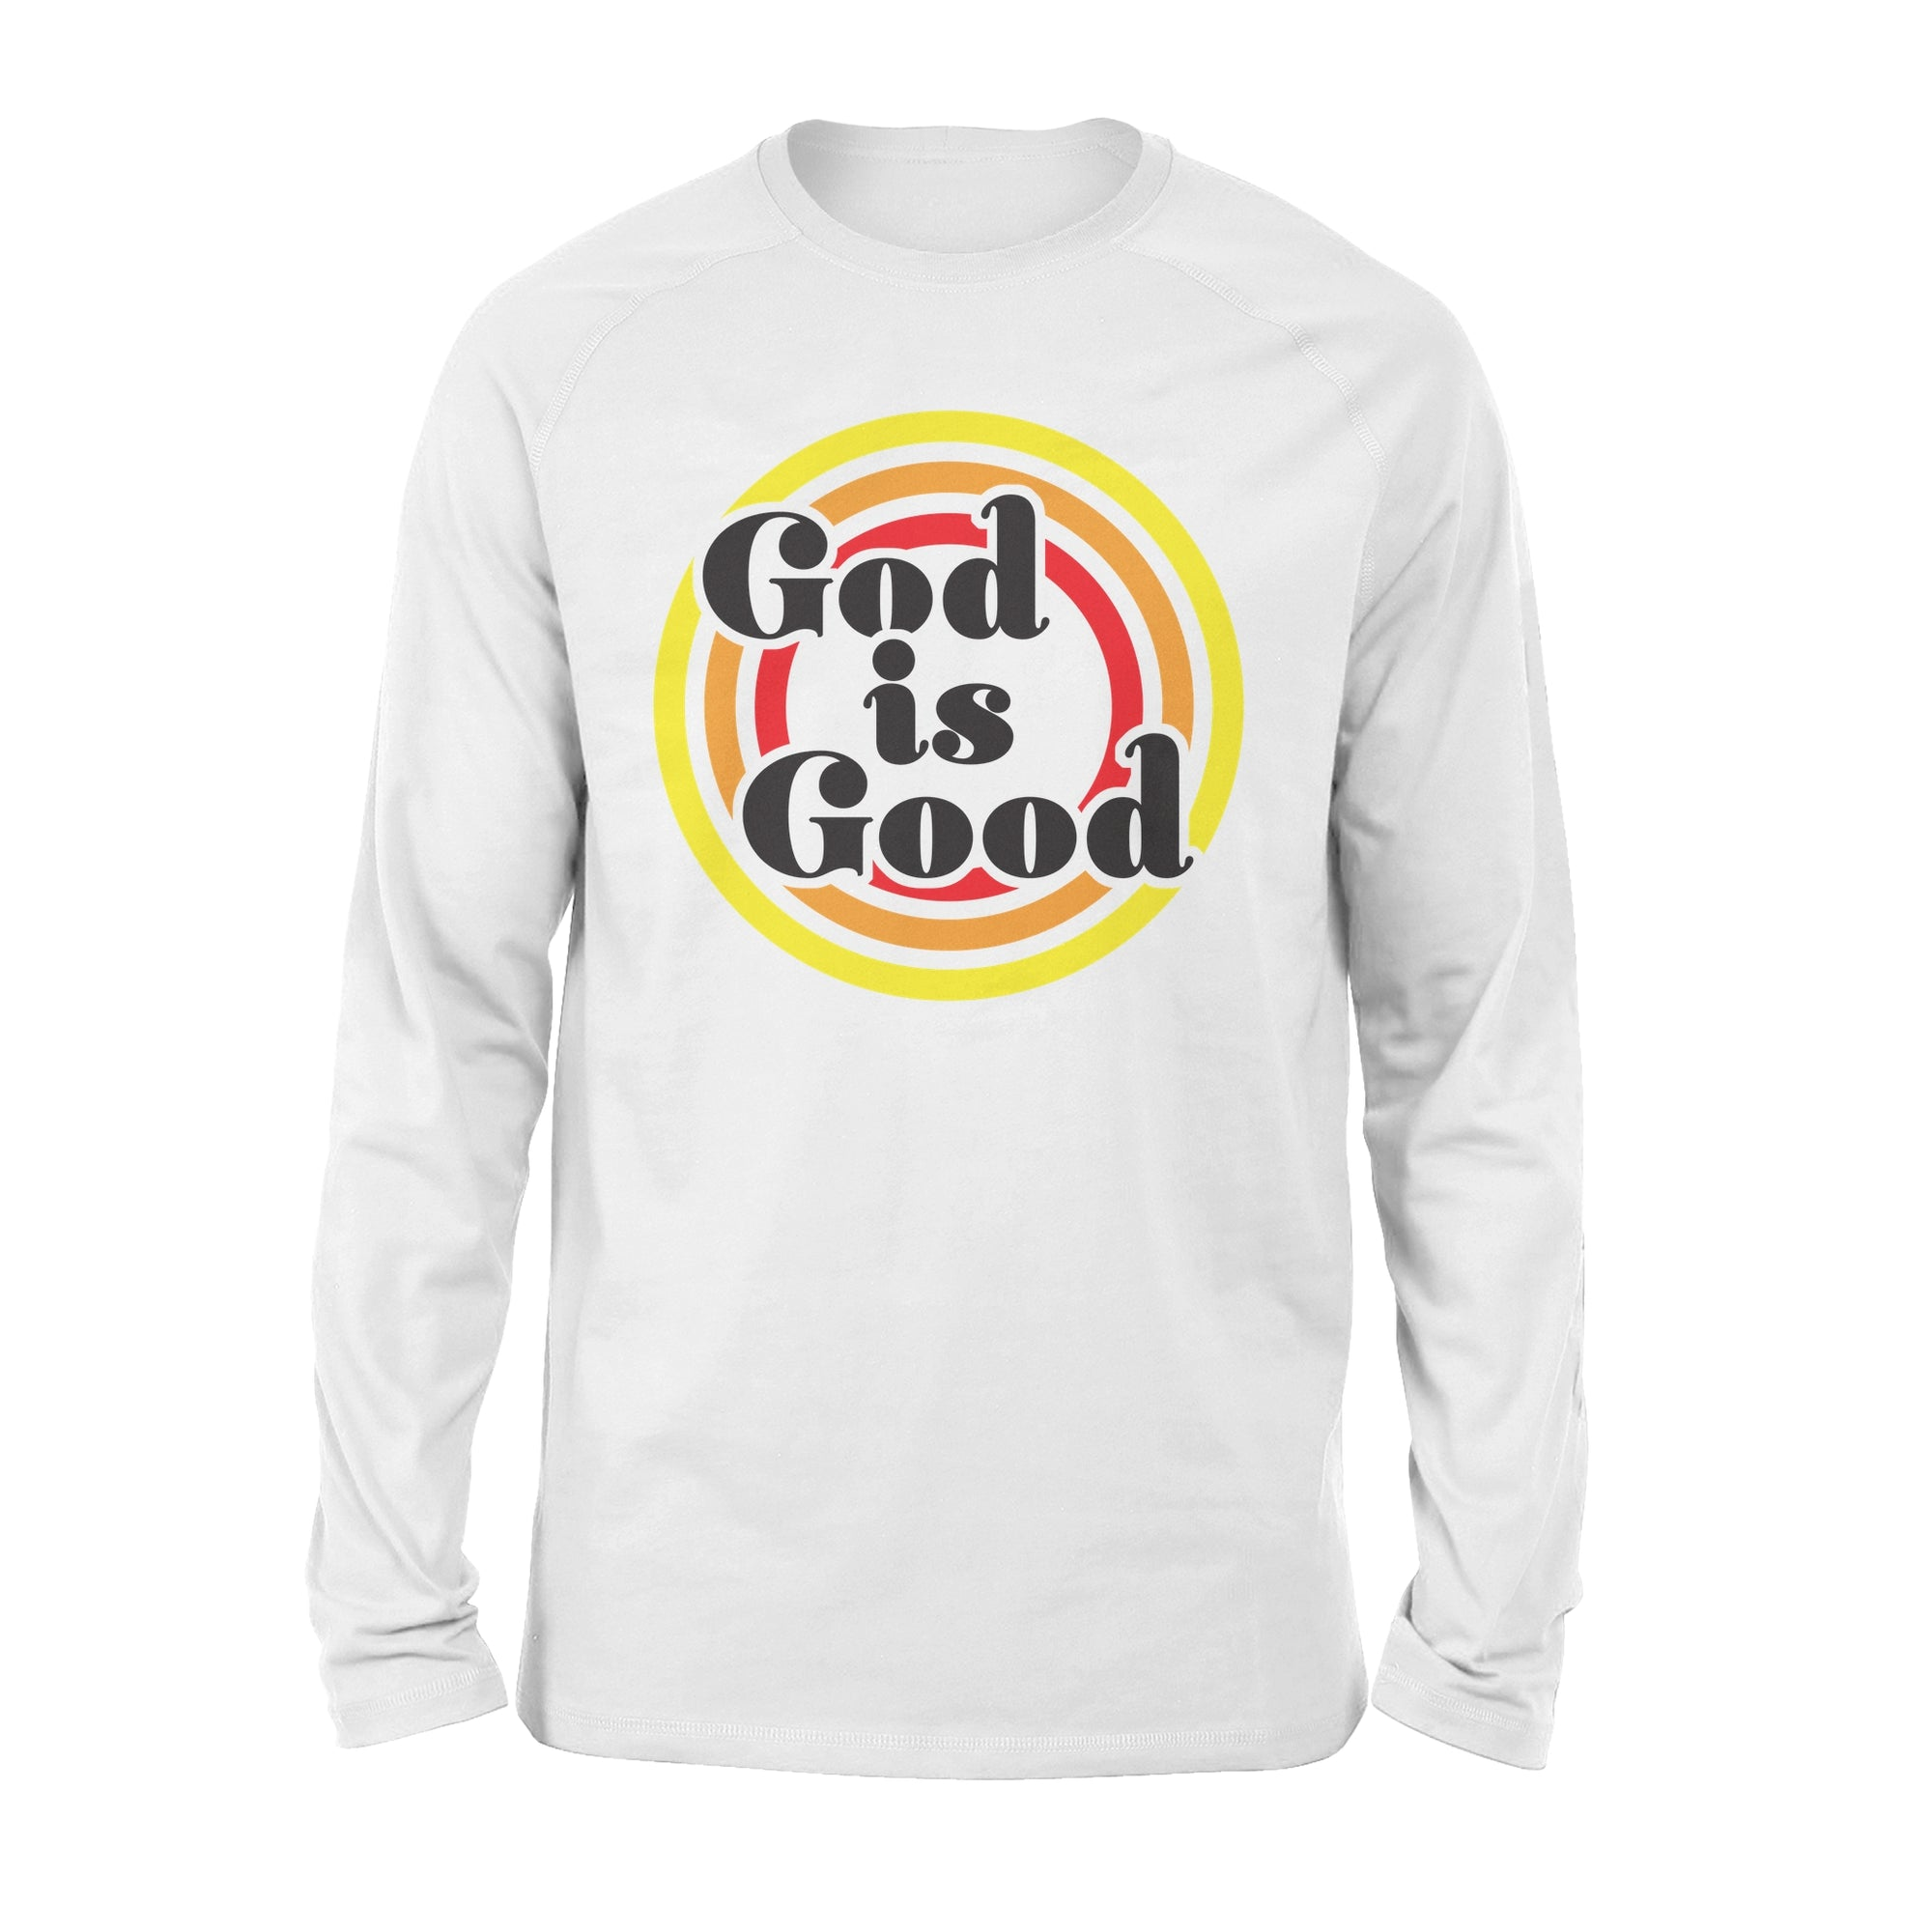 VIRA Awesome Premium Long Sleeve For God Lovers